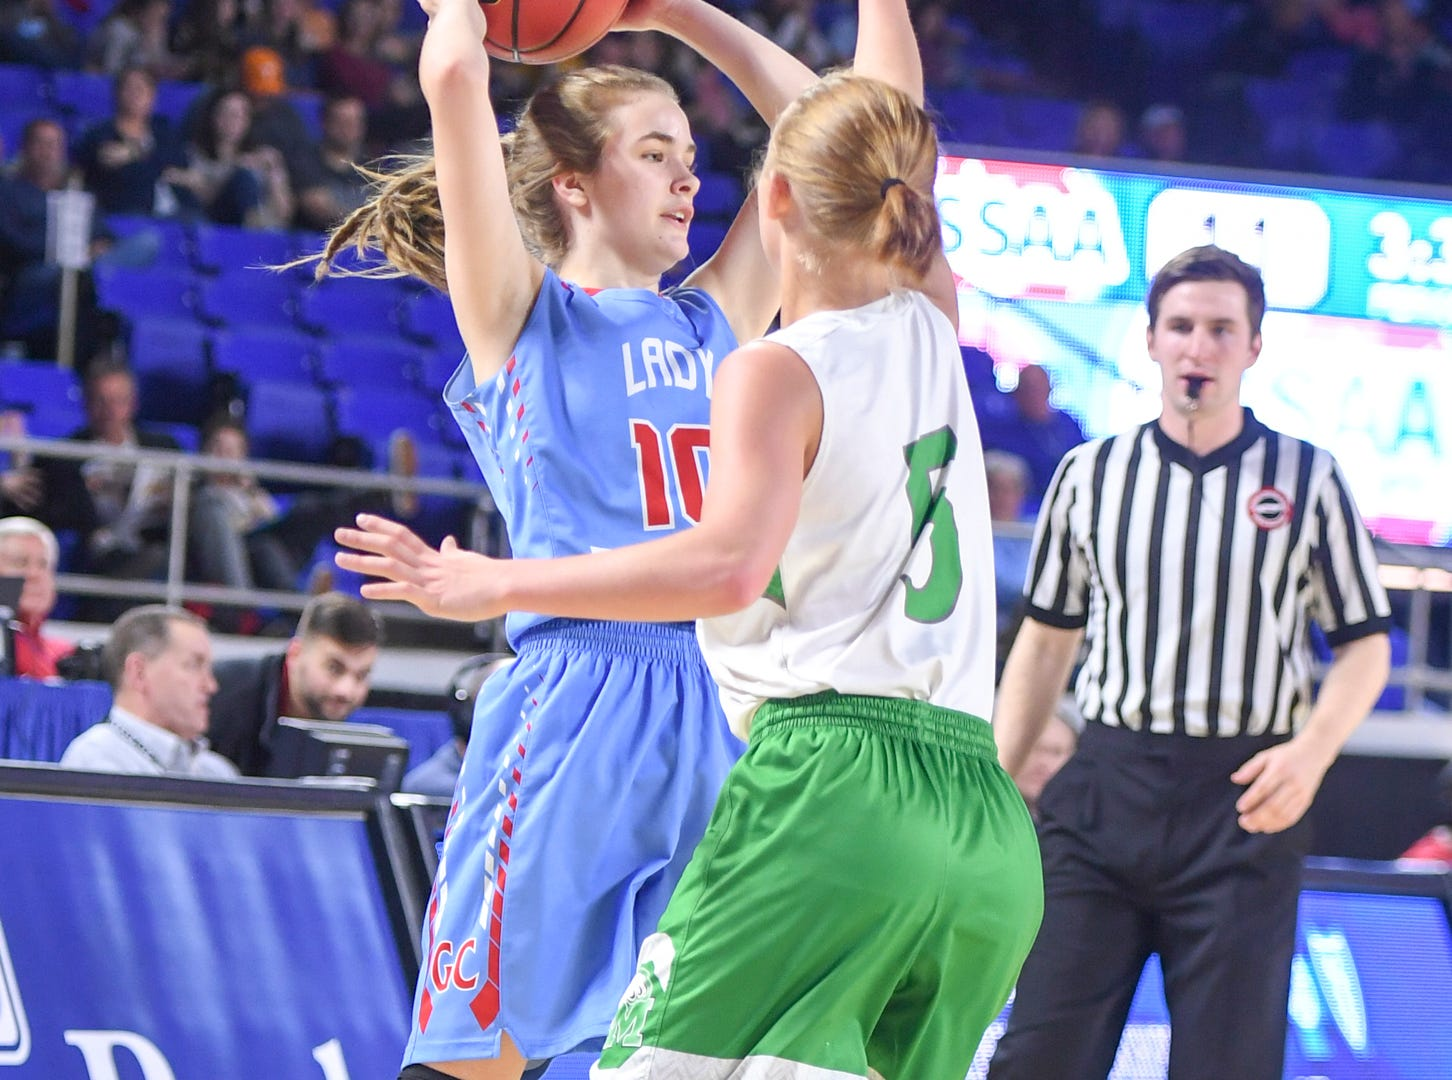 Gibson County's Kaci Sweatt (10) looks for an open teammate to pass to as Midway's Paige Bacon (5) guards her during their Class A semifinal game, Friday, March 8, 2019, in  Murfreesboro.